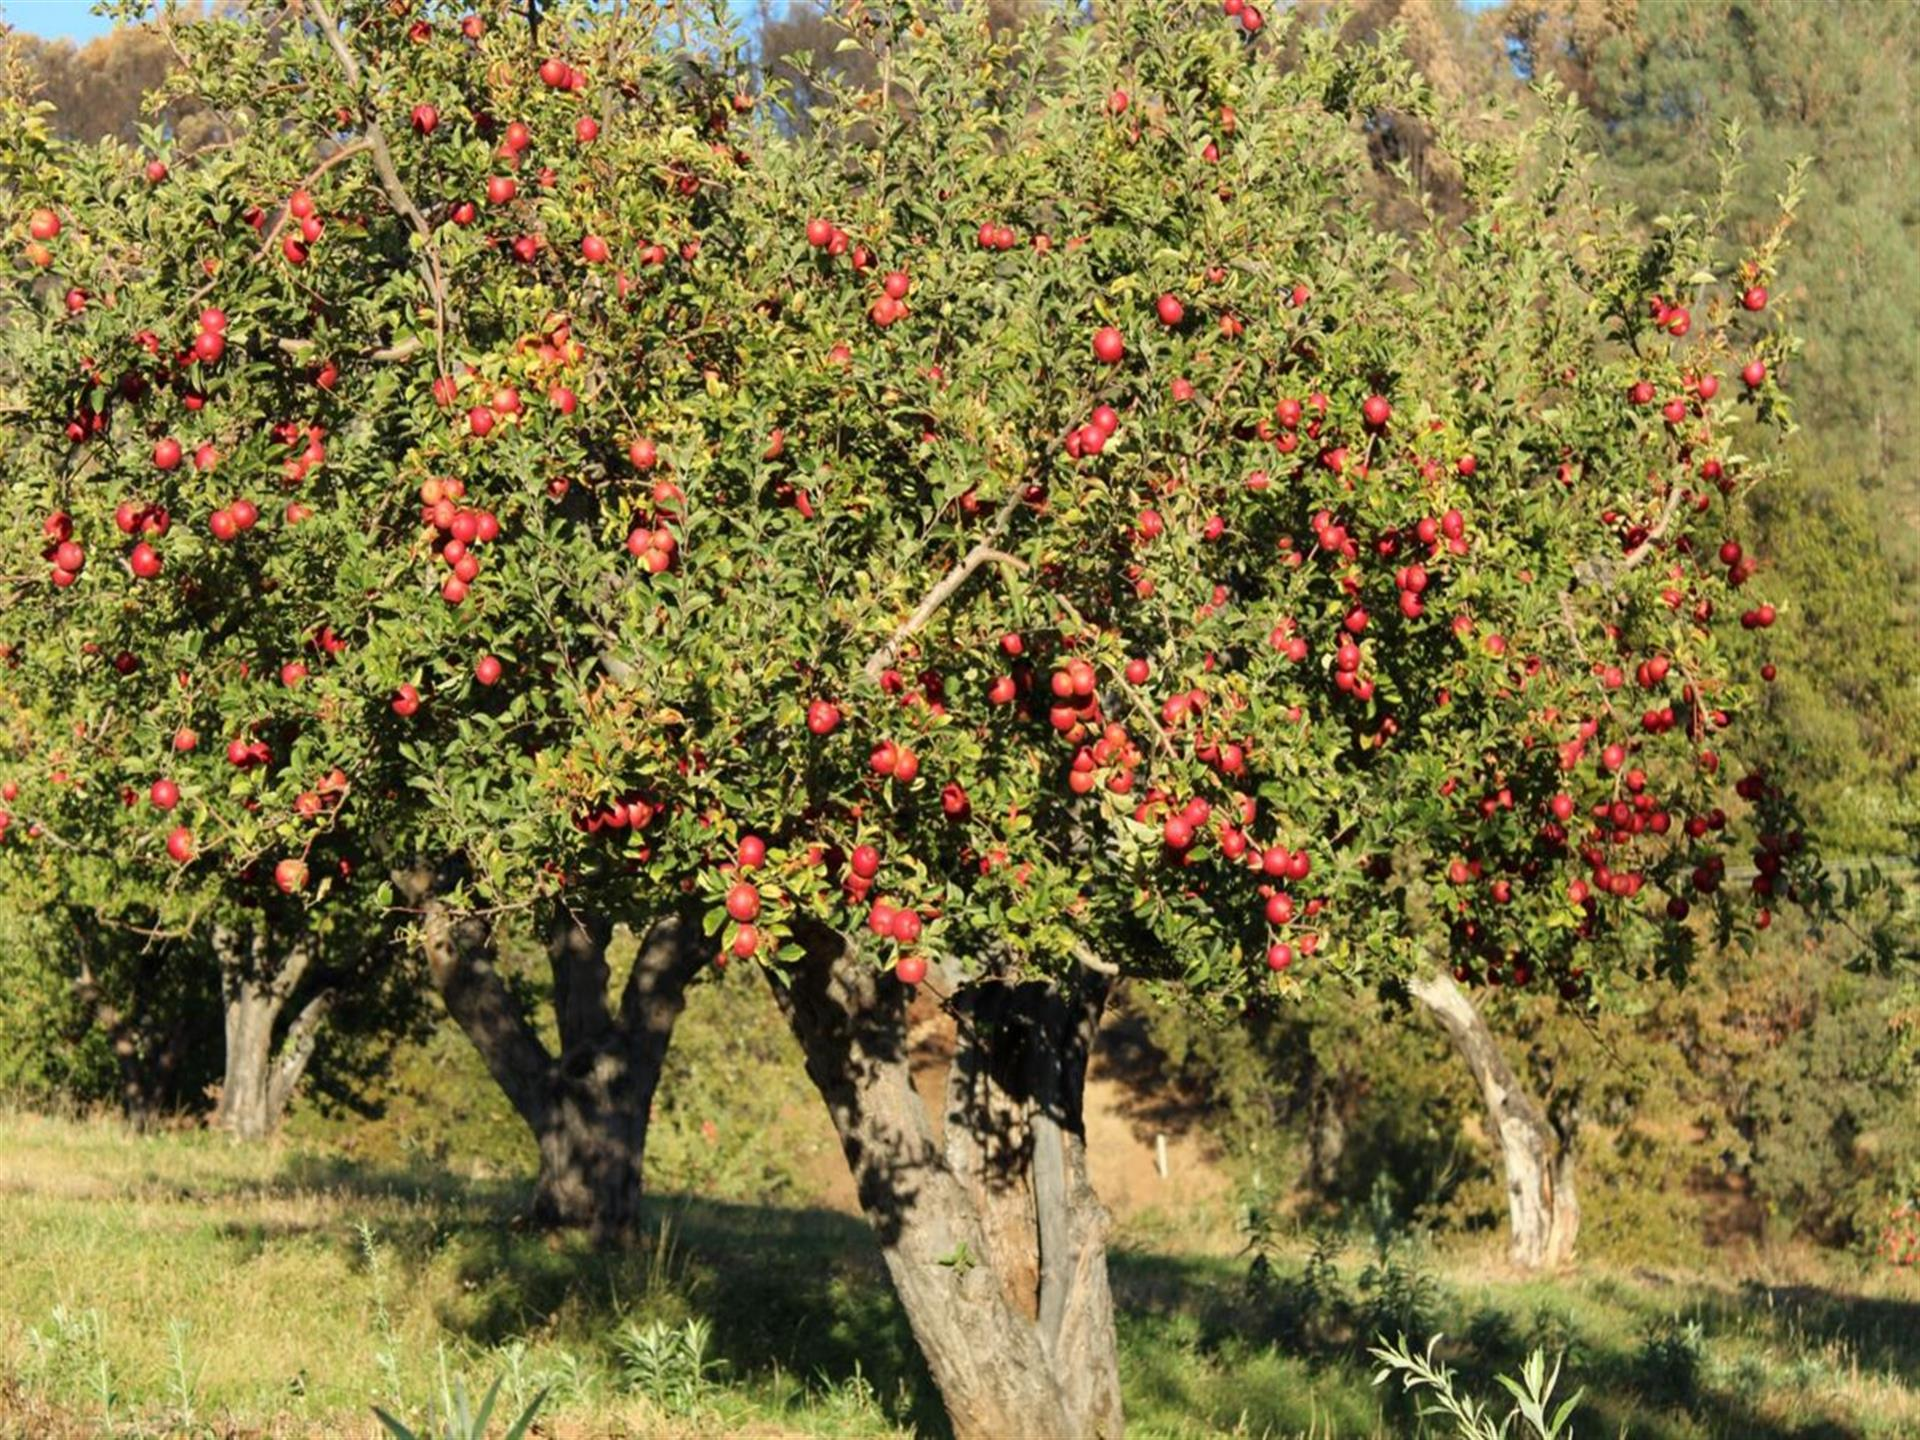 red apples hanging off an apple tree